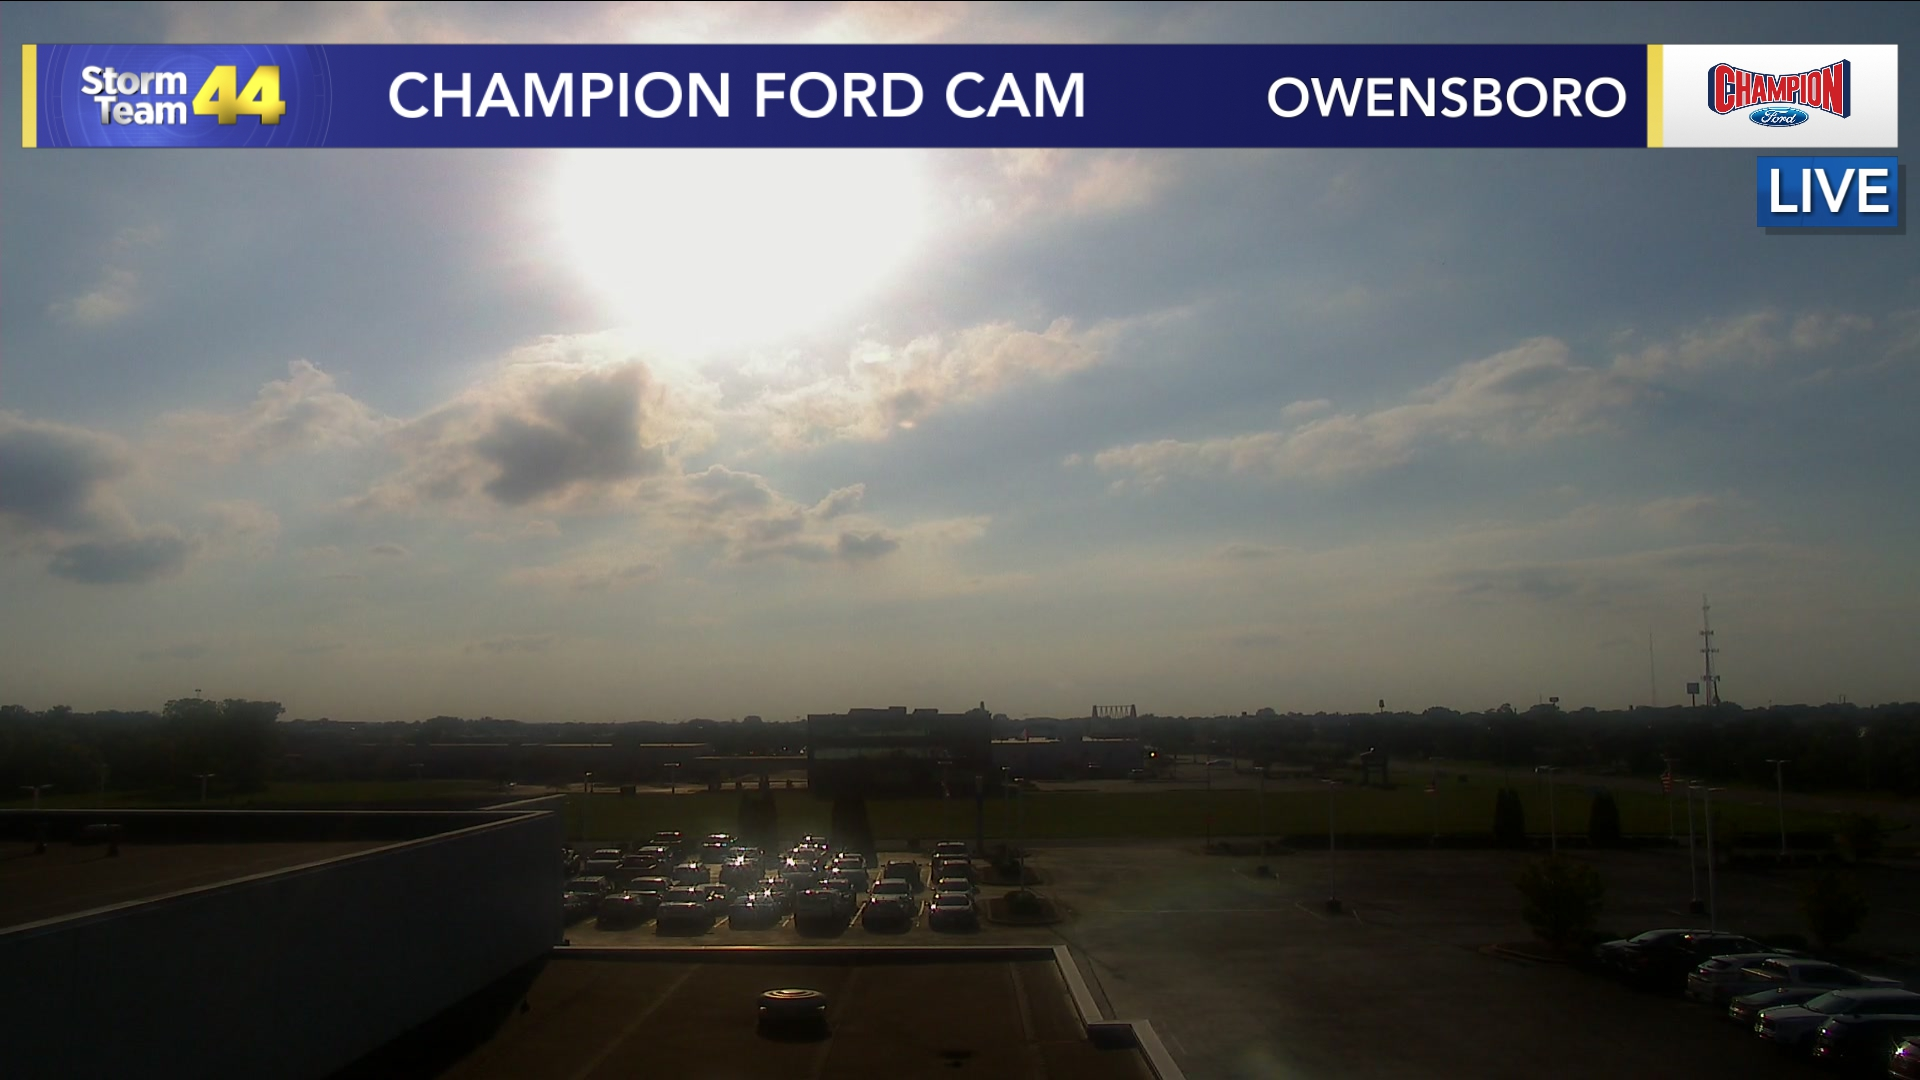 Owensboro%20Champion%20Ford%20Cam